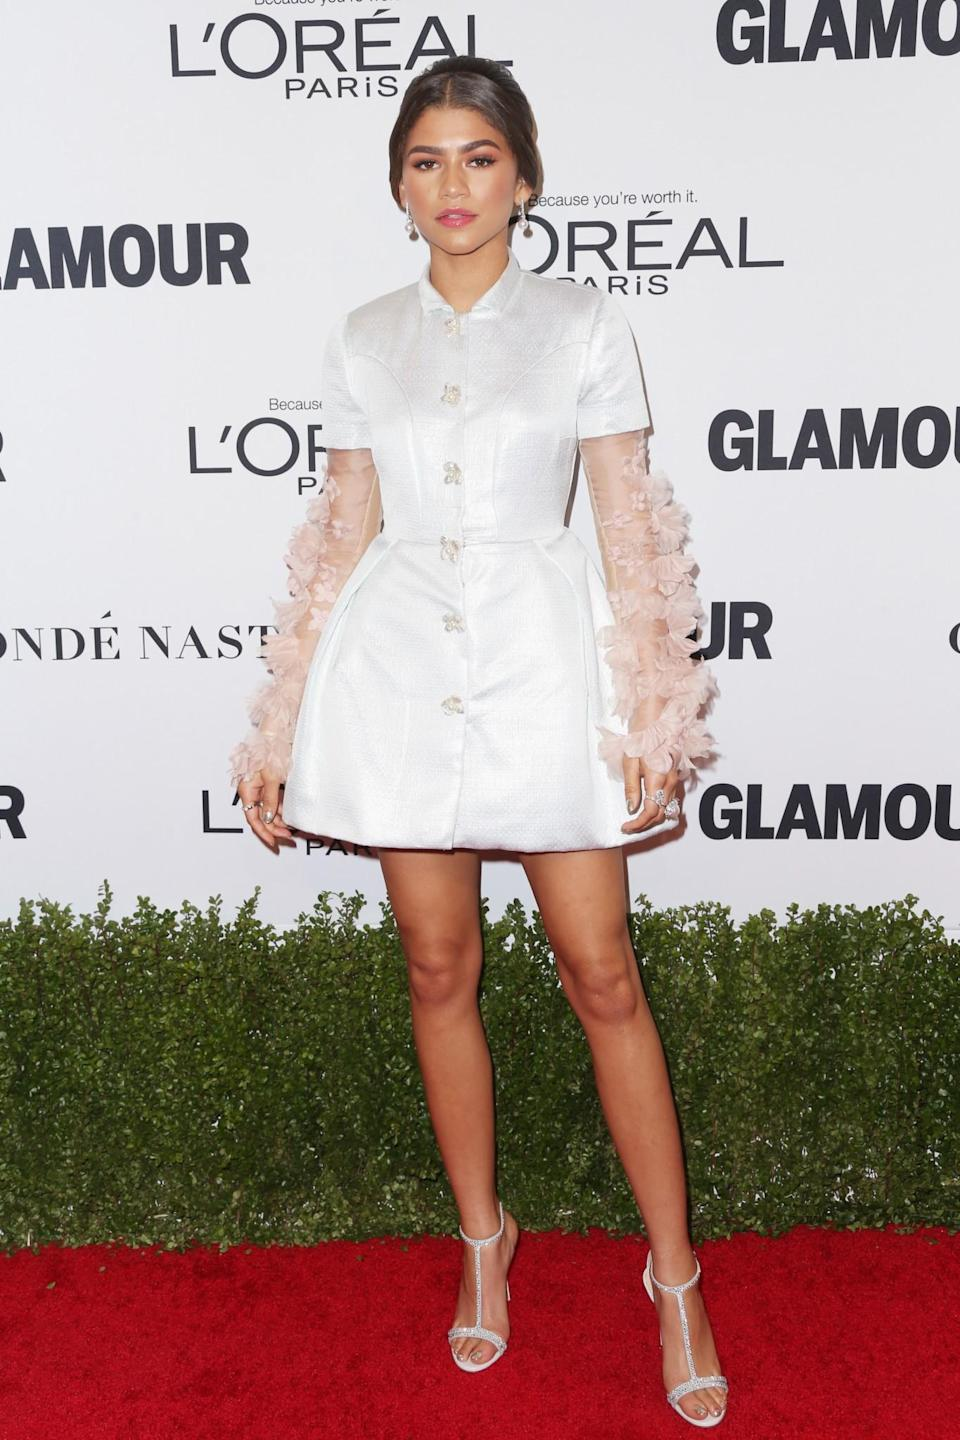 <p>Zendaya's cream Reem Acra dress with interesting ruffled sleeves added yet another style win to her impressive roster. <i>[Photo: Getty]</i> </p>